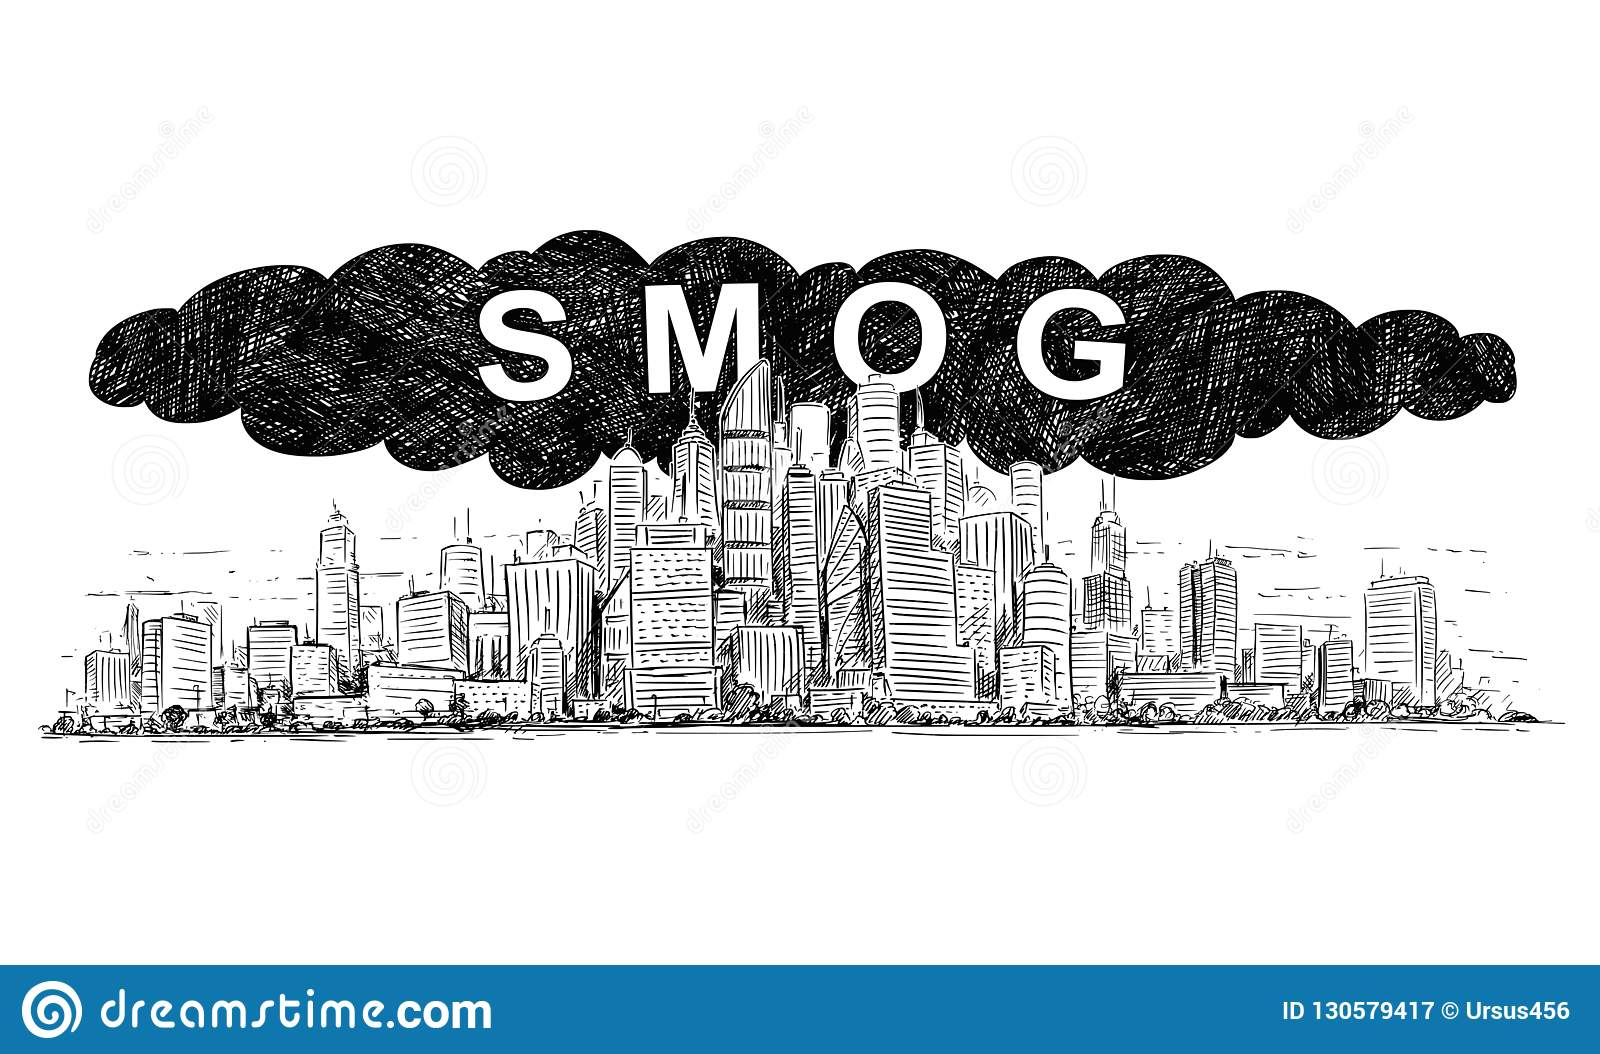 Vector artistic drawing illustration of city covered by smog